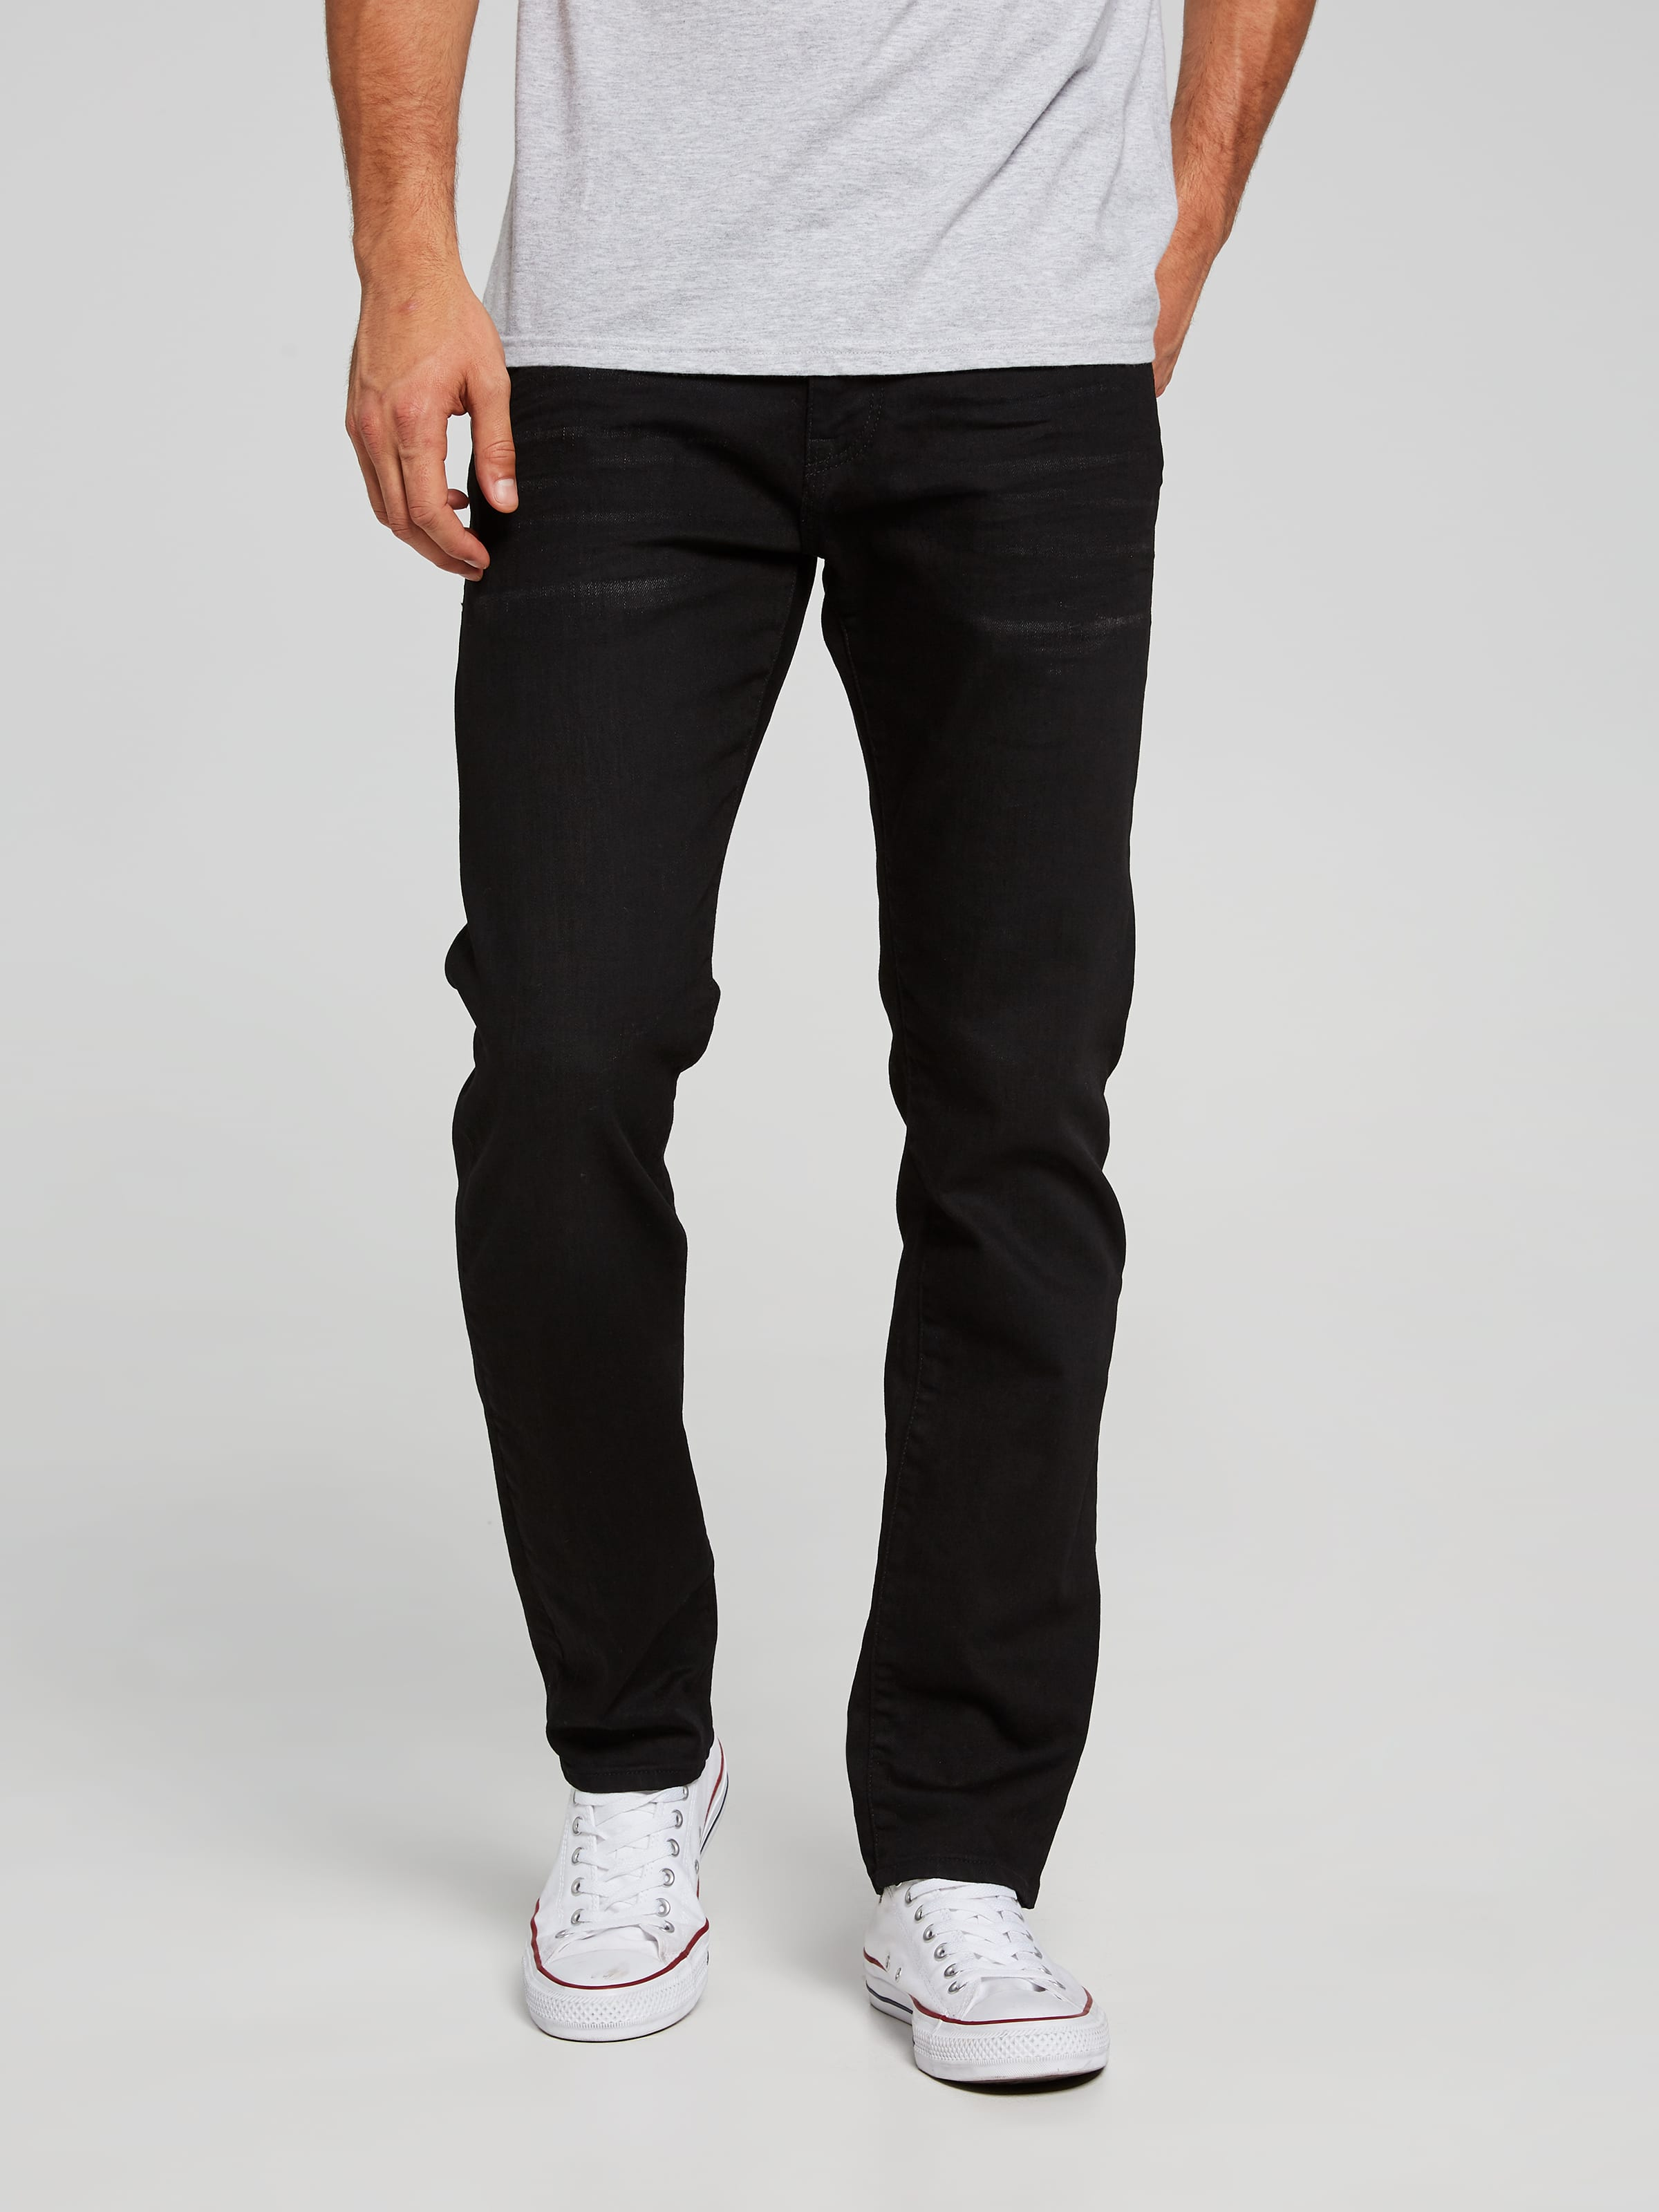 Mavi Marcus Slim Jean In Smoke Black